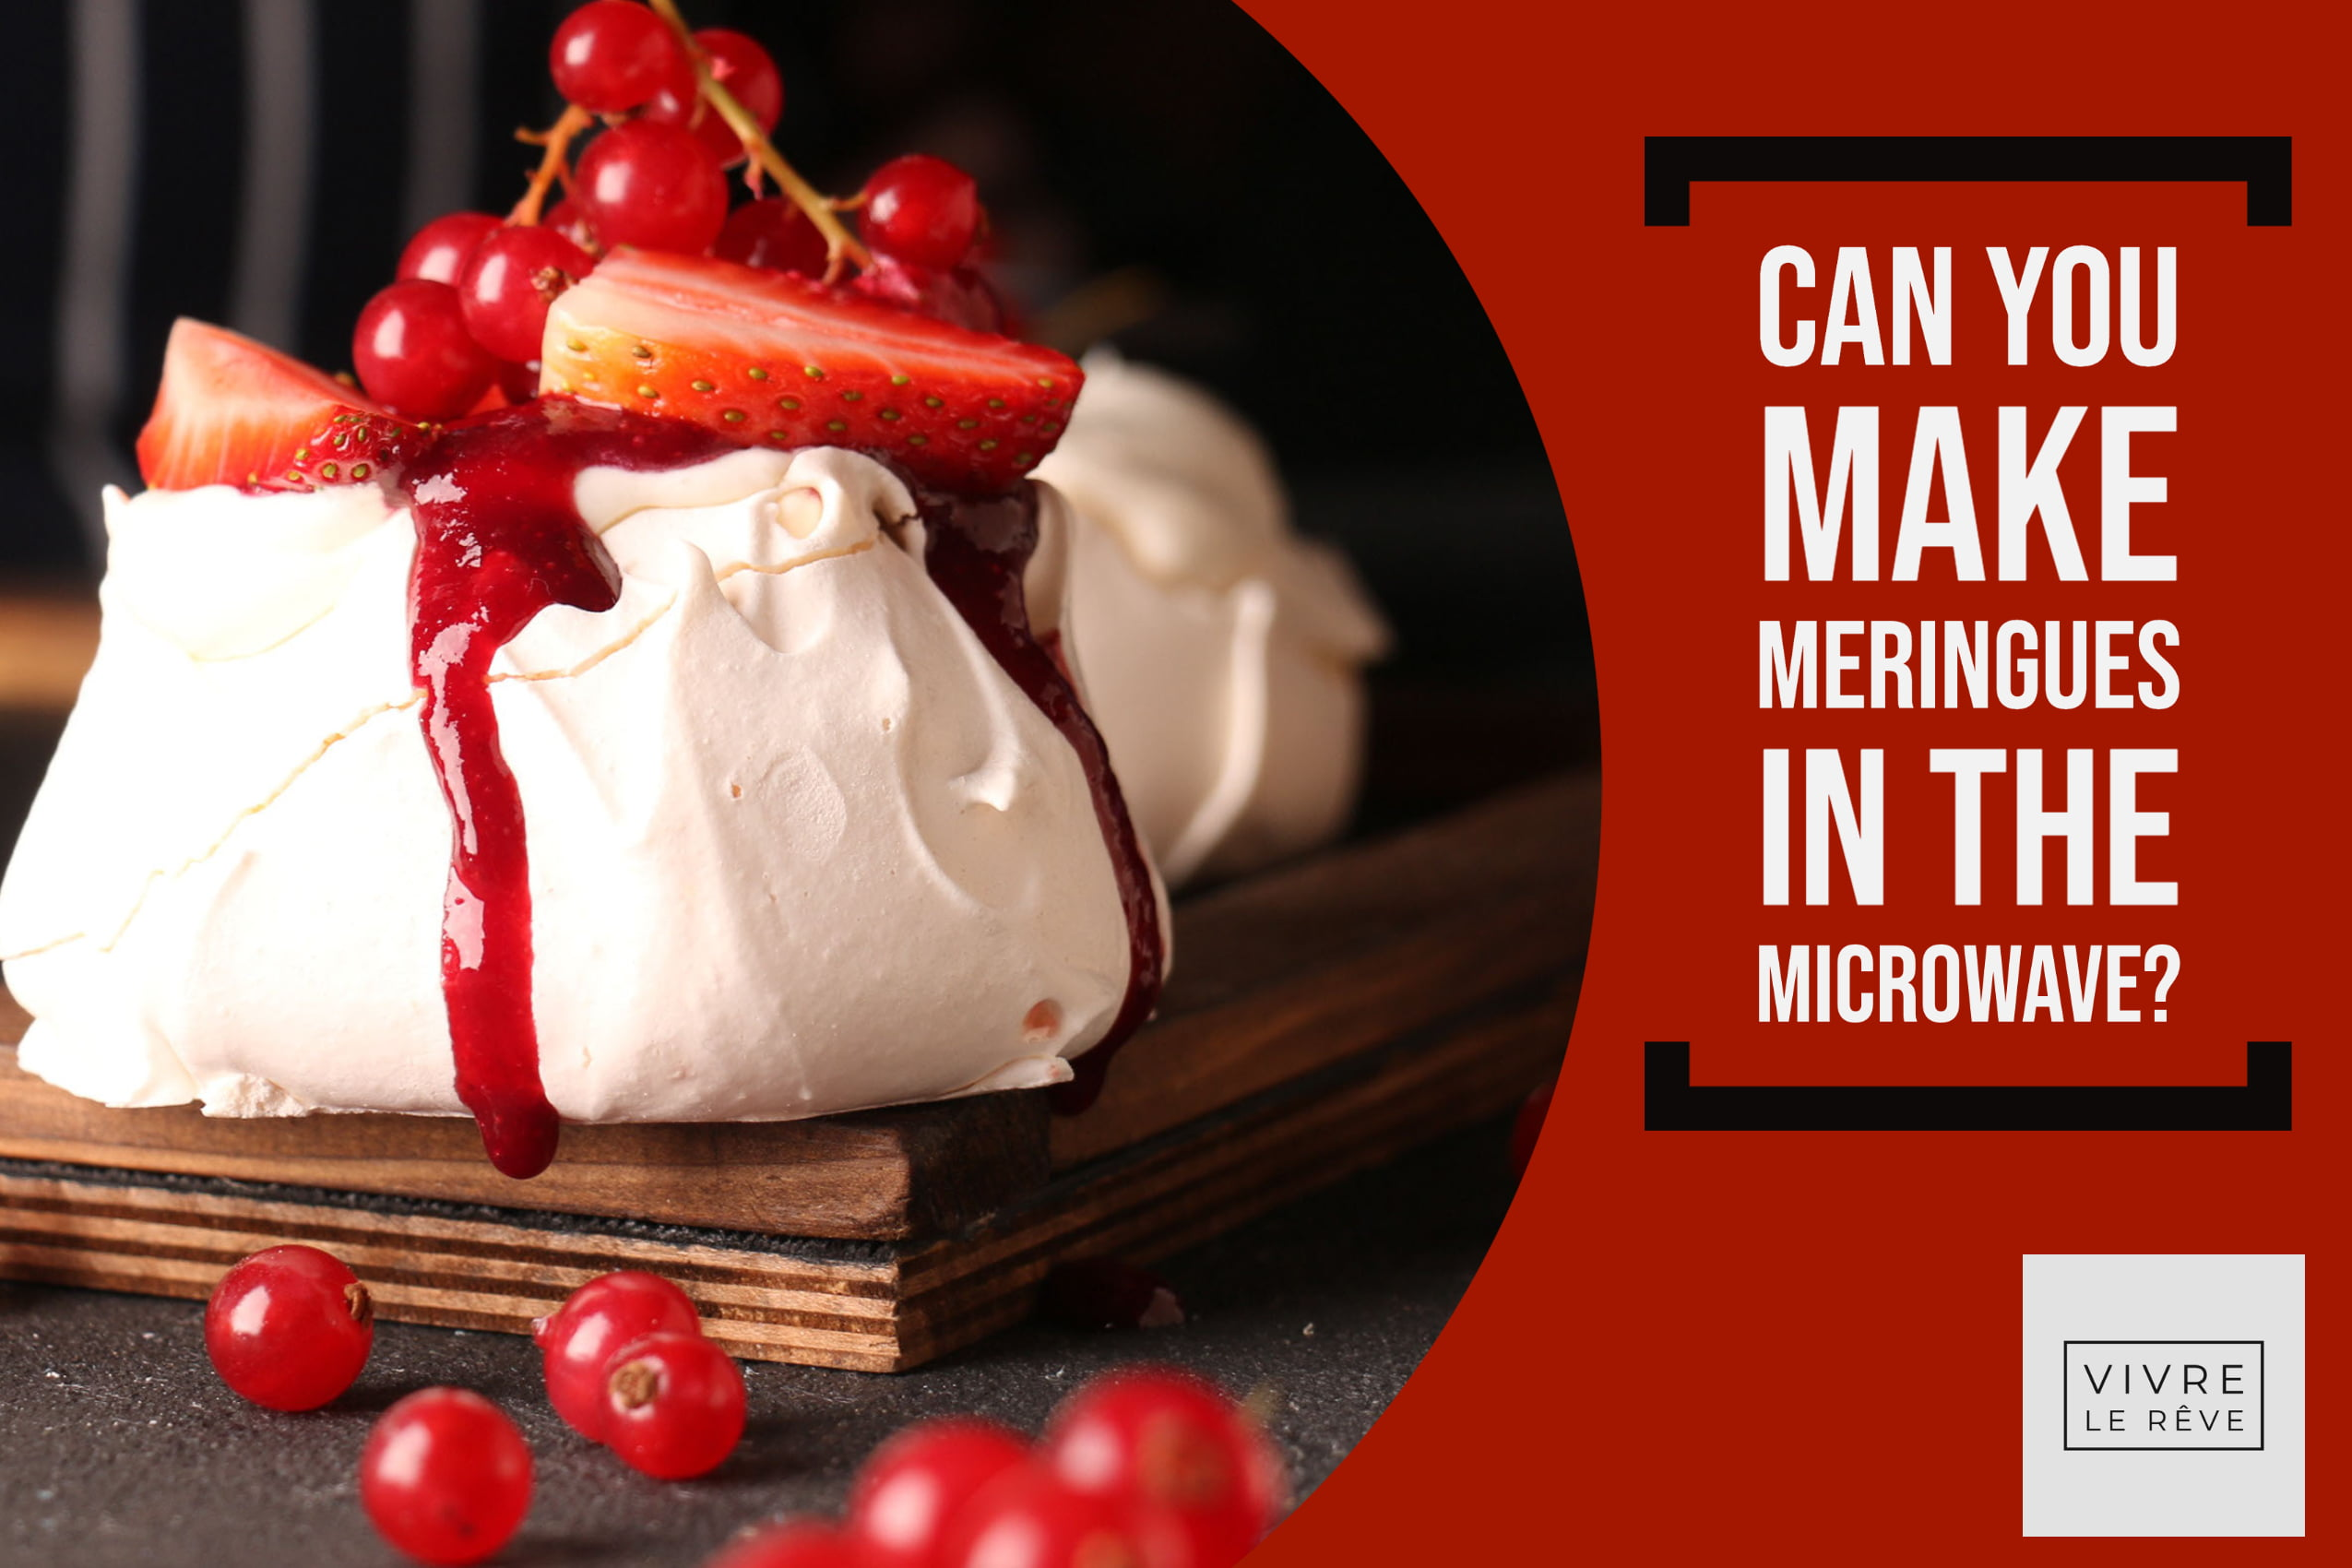 Can You Make Meringues In The Microwave?